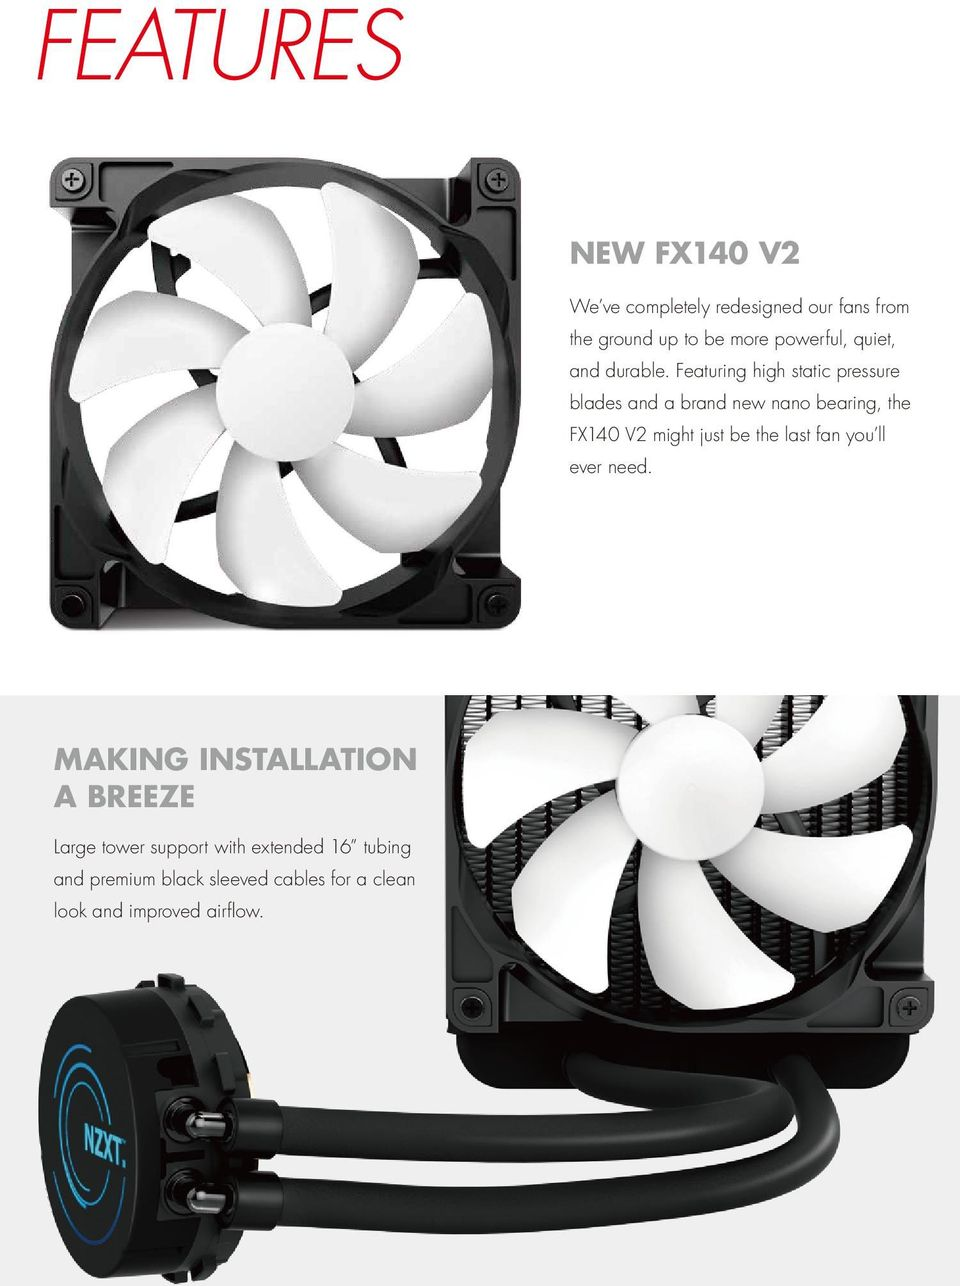 Kraken X41 The Worlds First Variable Speed Liquid Cooler Pdf Wiring 3 Pin Cpu Fan Zalman Free Download Diagrams Pictures Featuring High Static Pressure Blades And A Brand New Nano Bearing Fx140 V2 Might